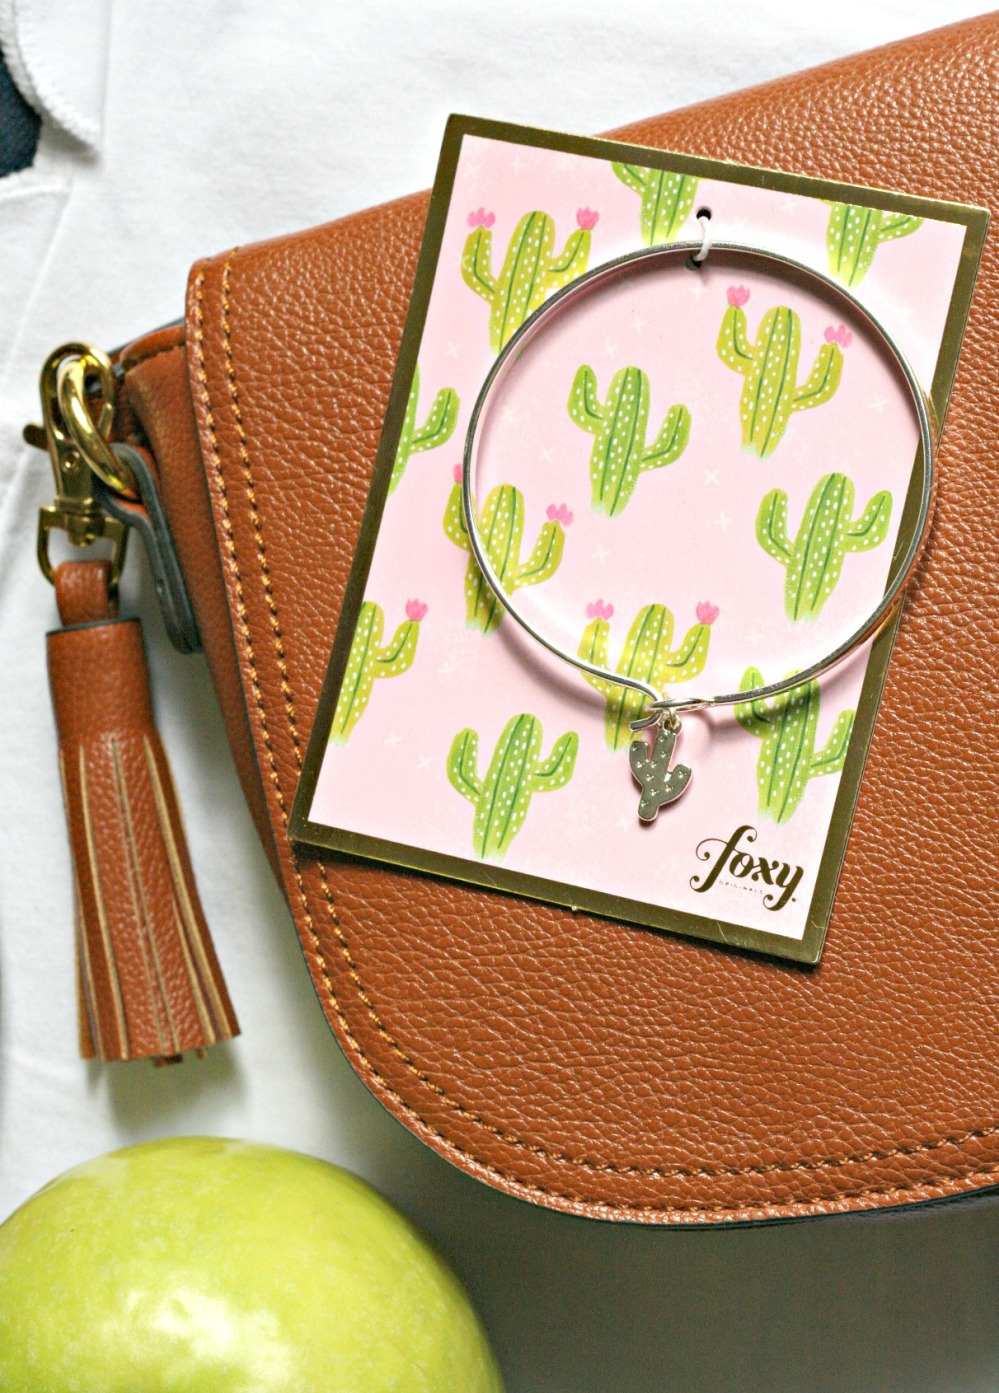 Foxy Originals cactus bangle try small things